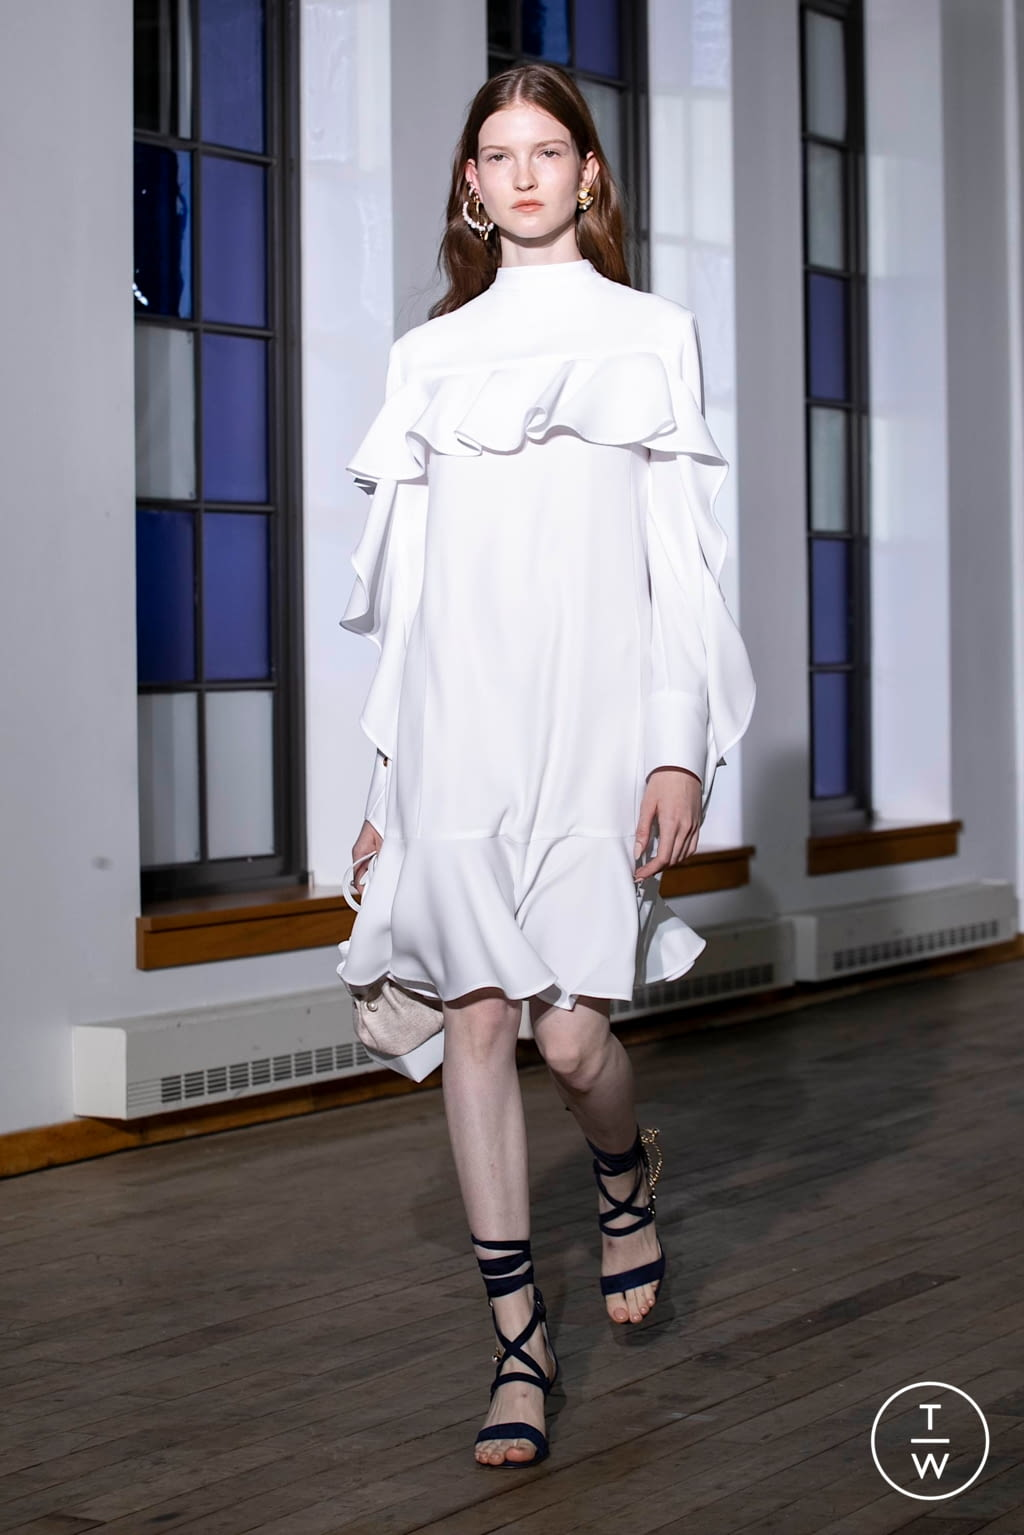 Fashion Week New York Spring/Summer 2020 look 6 from the Adeam collection 女装